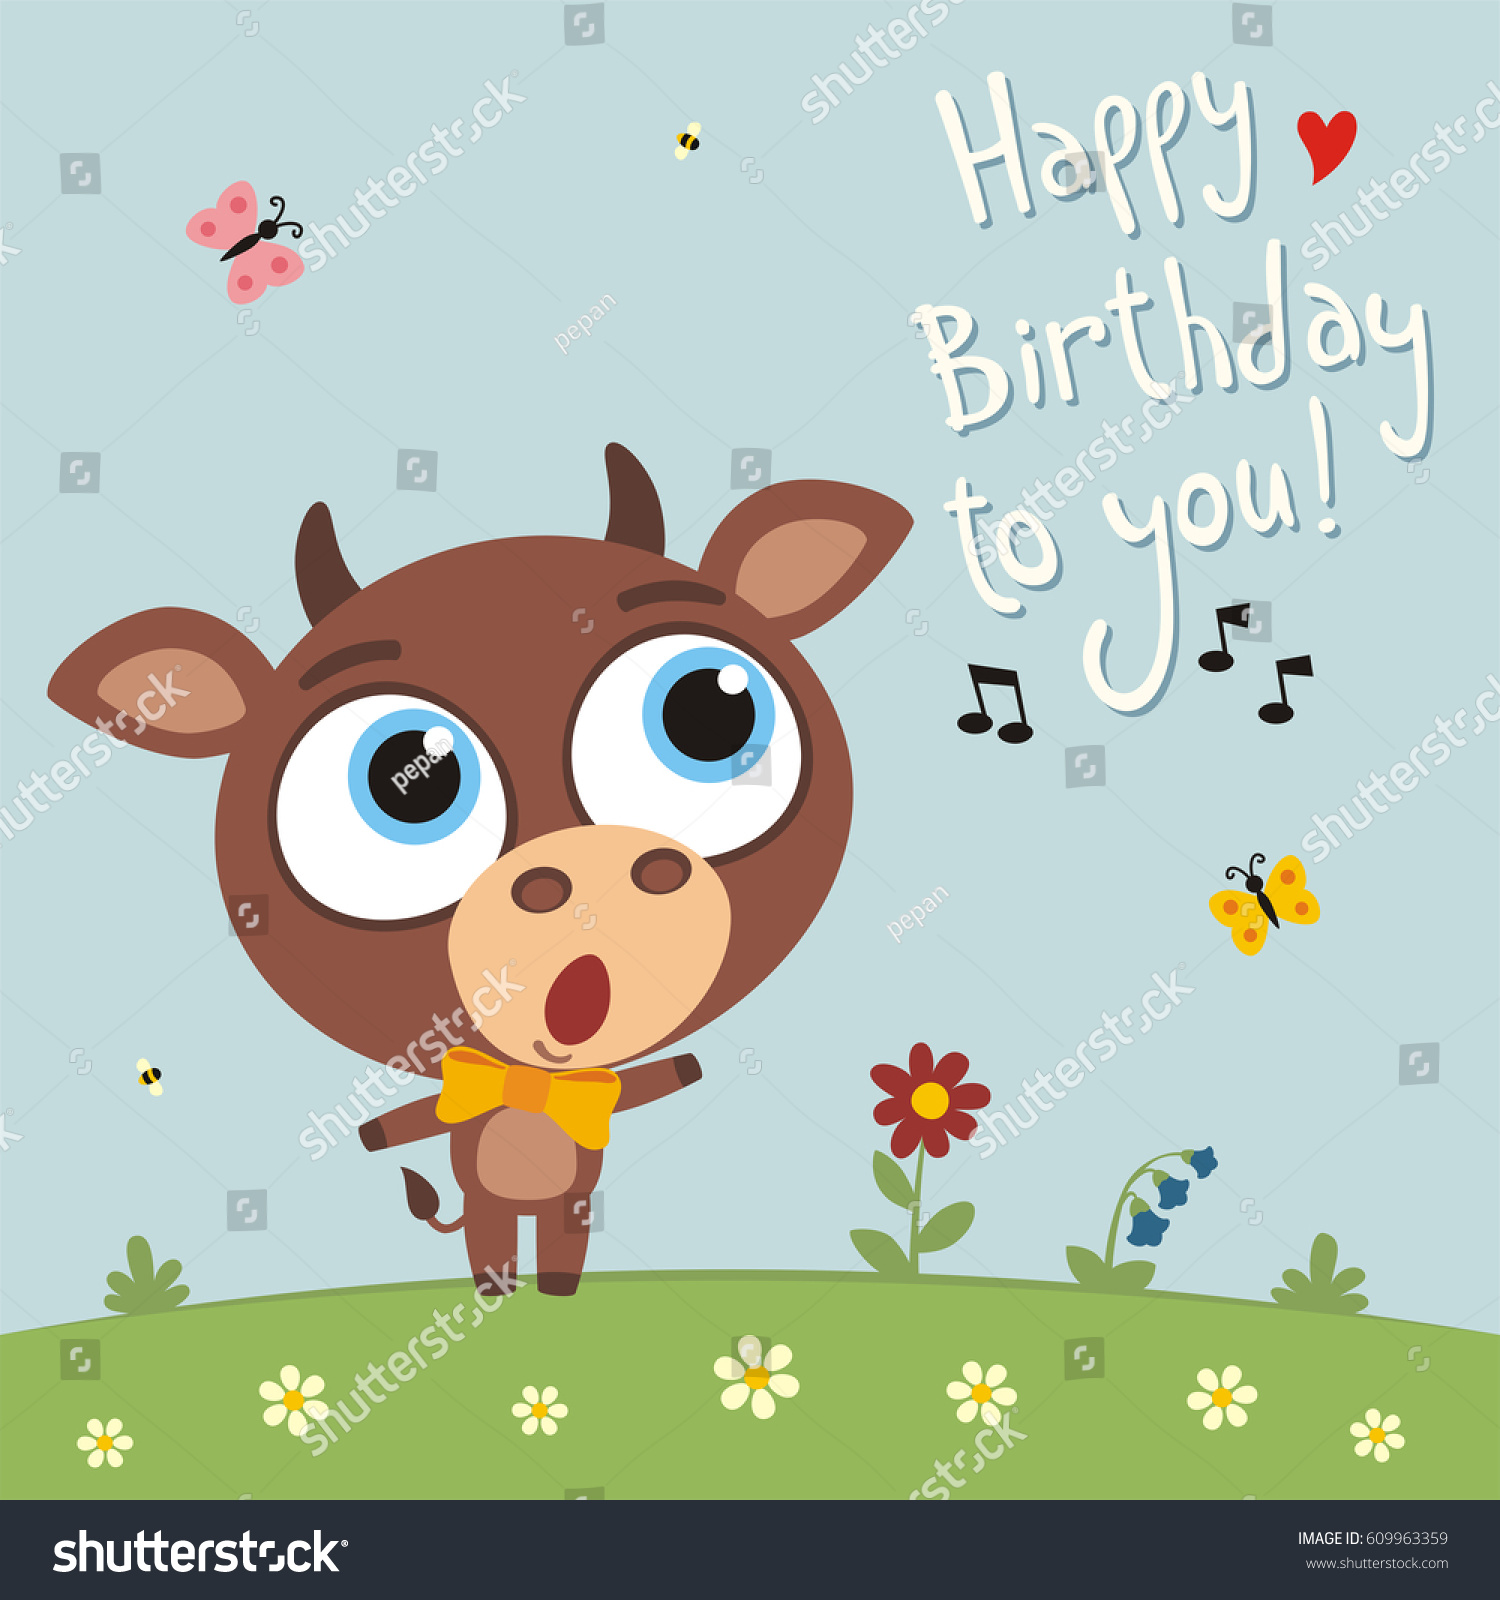 Happy birthday you funny cow sings stock vector 609963359 happy birthday to you funny cow sings birthday song card with cow in cartoon bookmarktalkfo Images